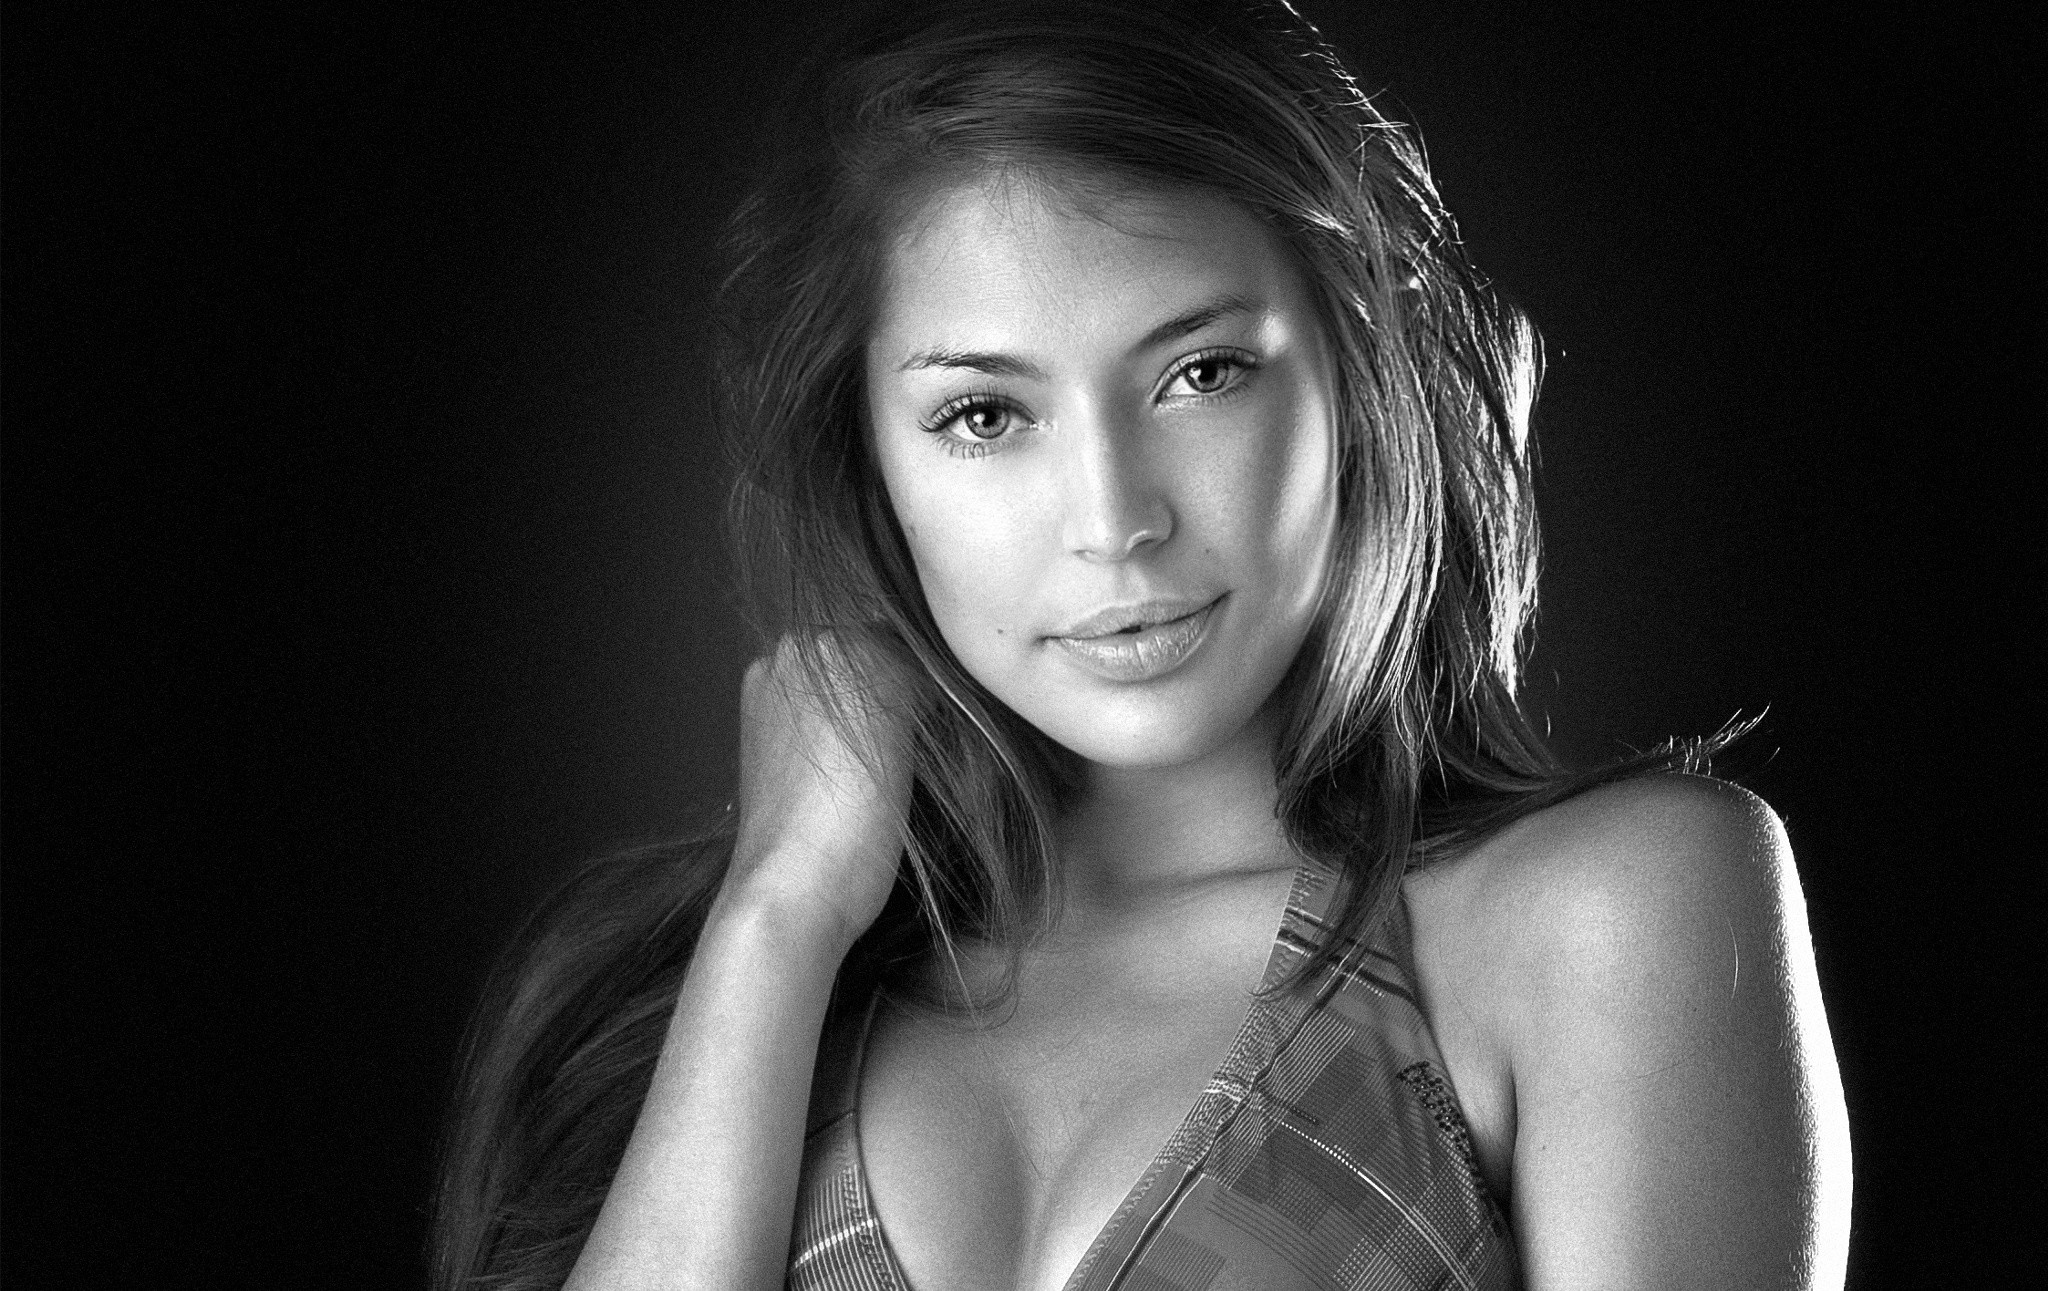 A true Beauty......in black and white